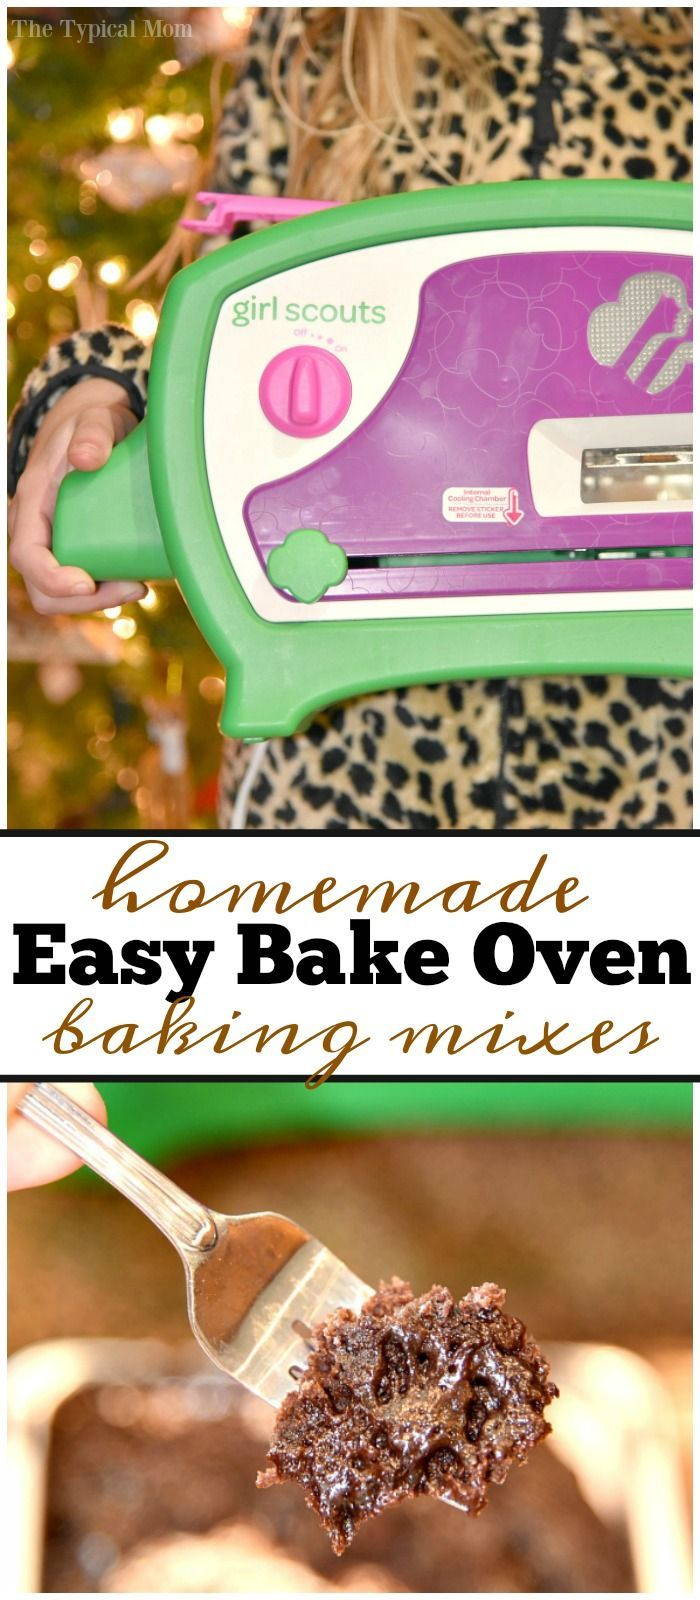 Homemade easy bake oven recipes are great to save you a bit of money. Easy brownie and cake mixes you can use that taste just as good as store bought! via @thetypicalmom